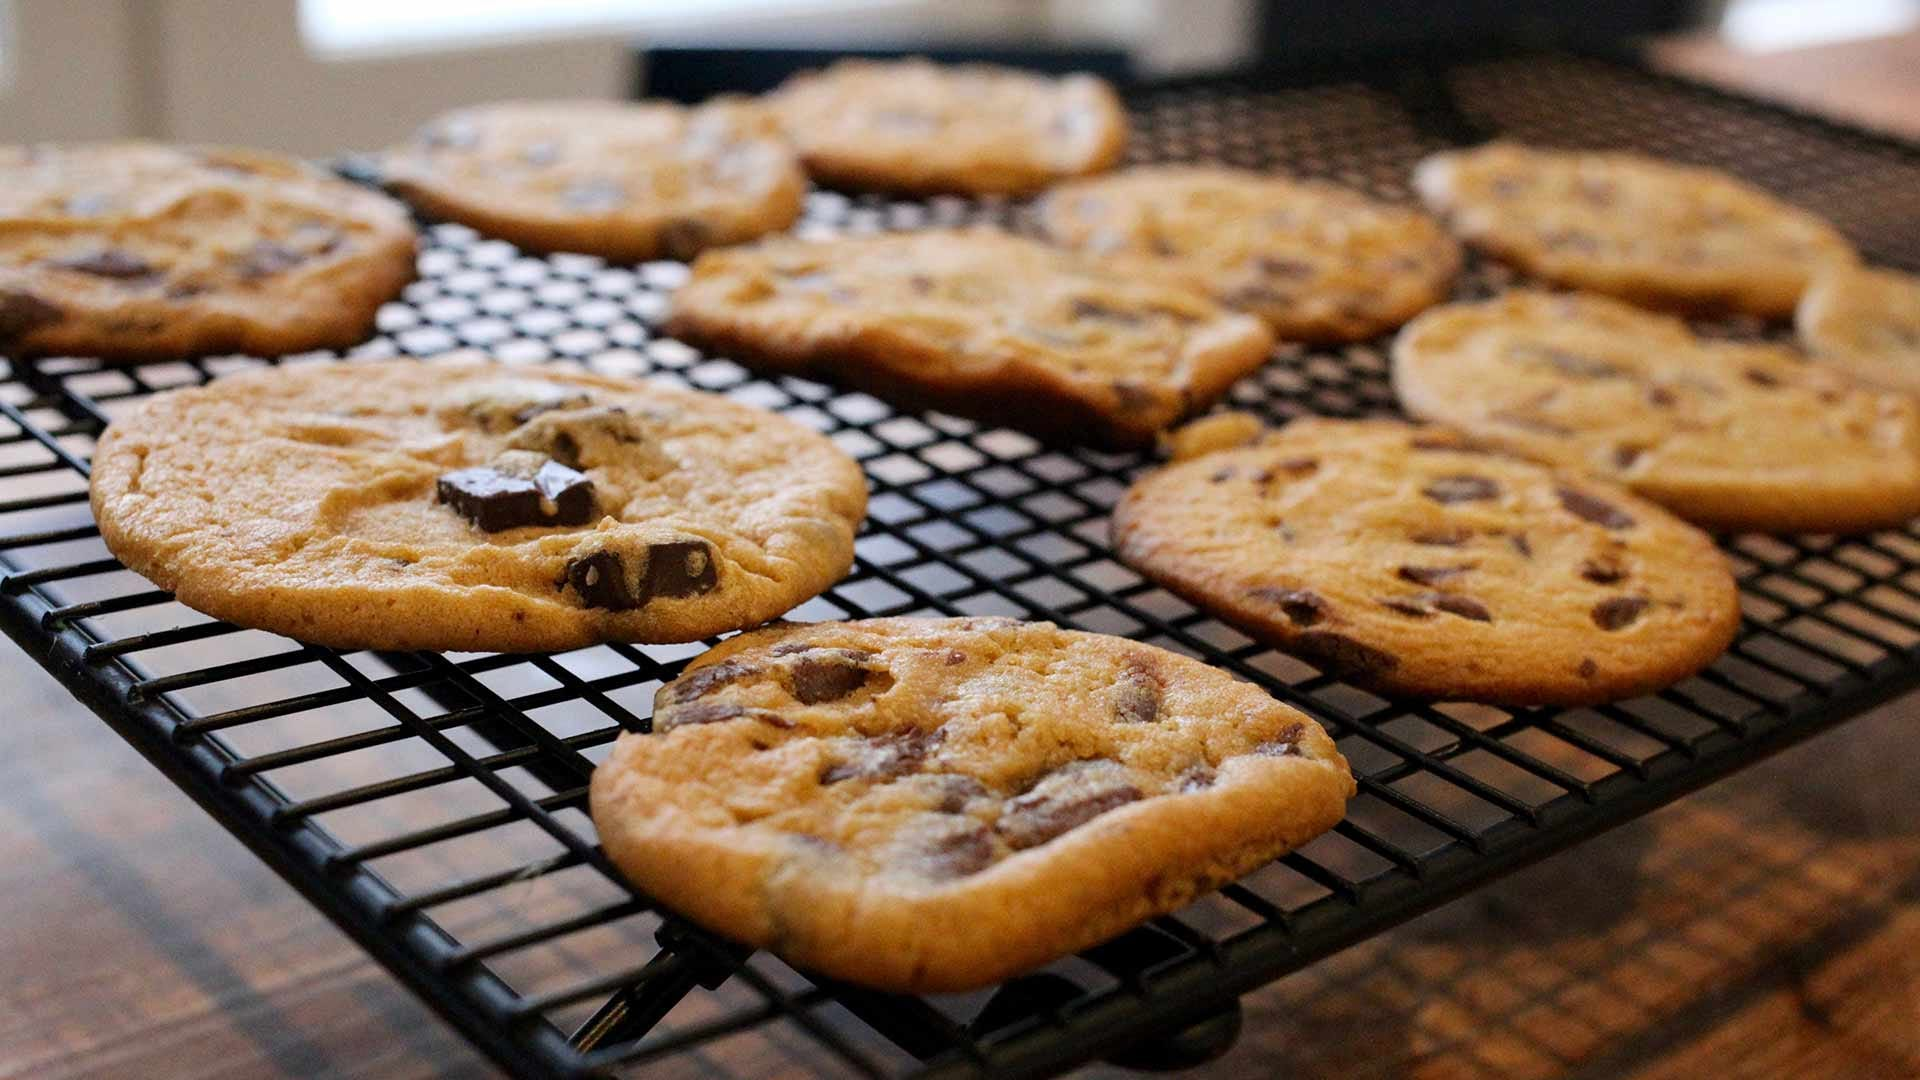 Thin and crispy chocolate chip cookies, cooling on a wire rack.